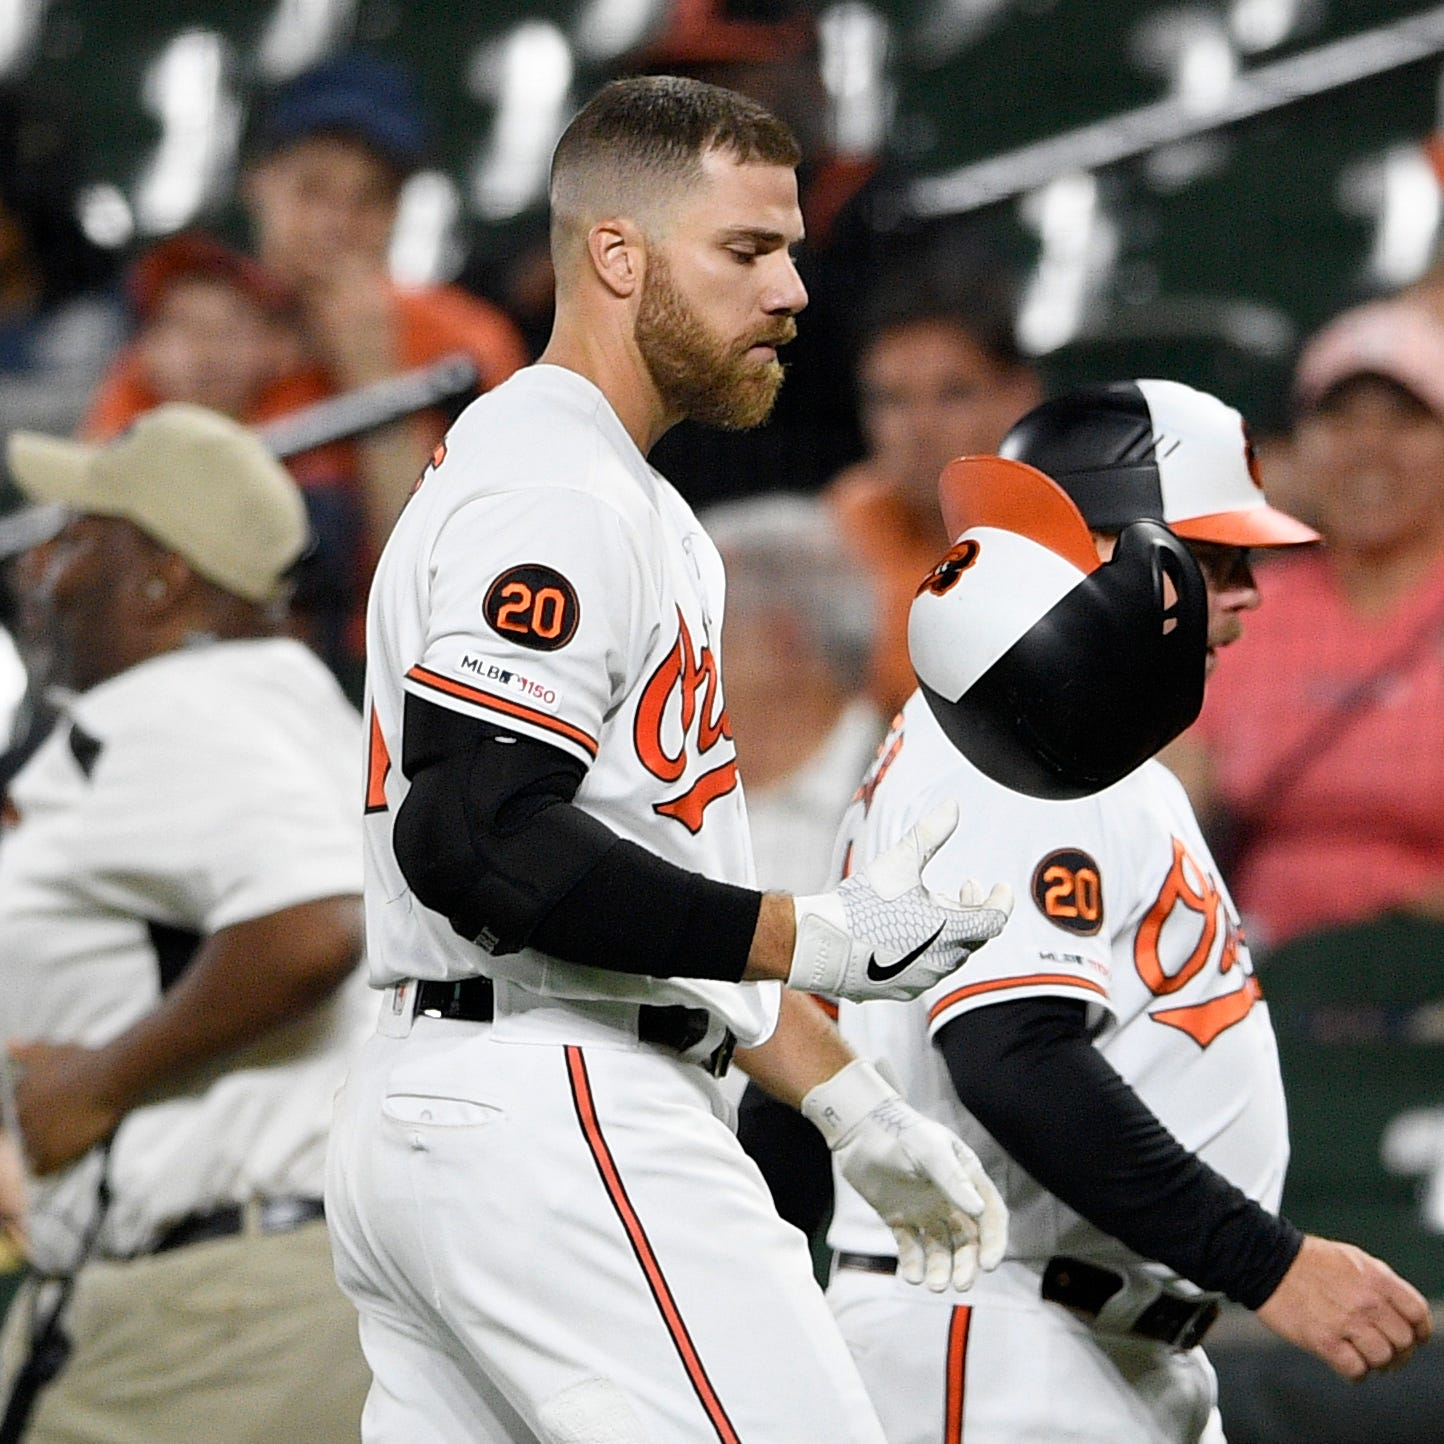 0-for-ever: Orioles' Chris Davis extends hitless streak to record 49 at-bats